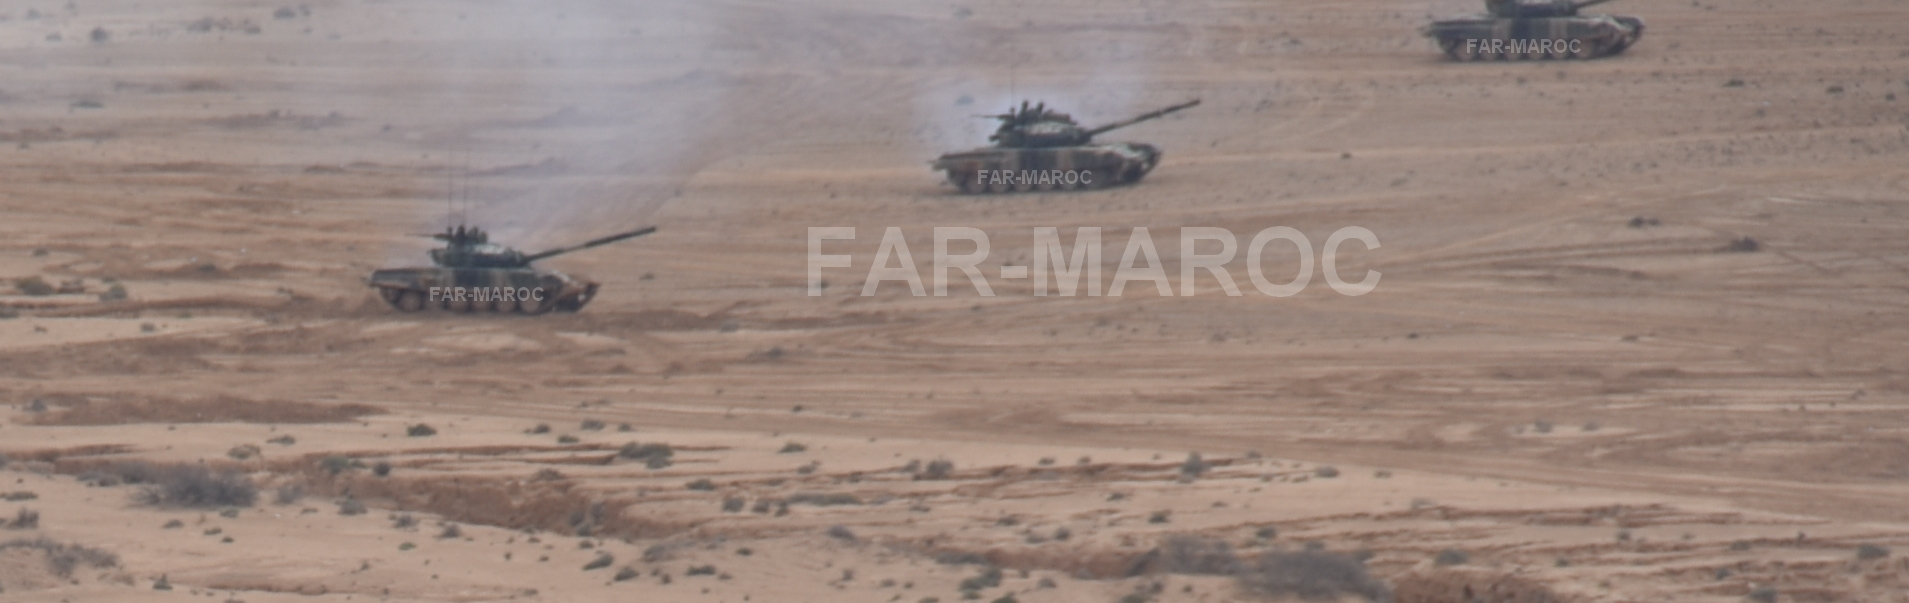 Chars T-72B/BK MArocains // Moroccan Army T-72B/BK Tanks - Page 3 49173894801_6ba671ee23_o